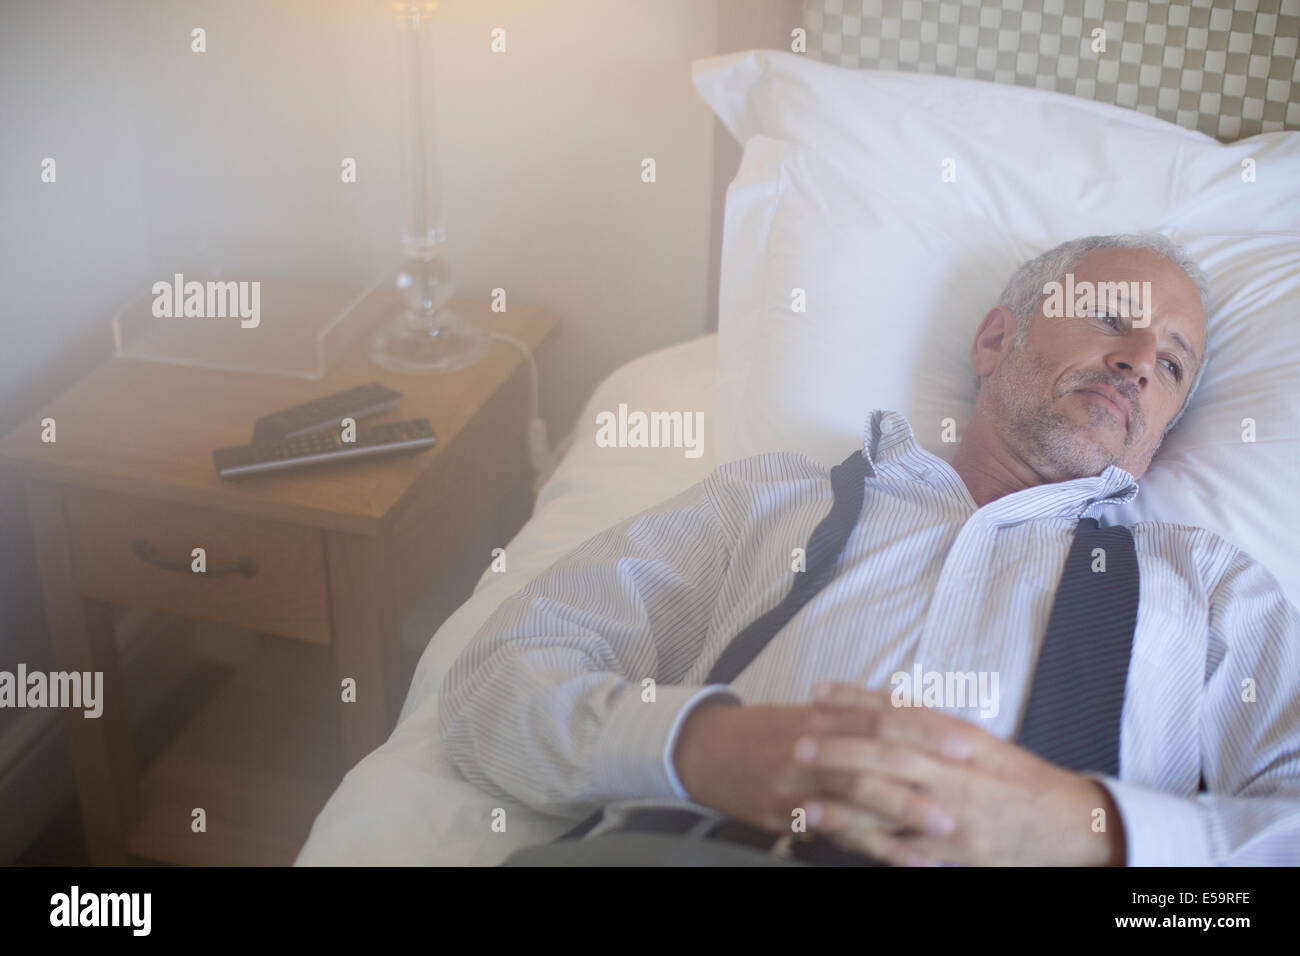 Businessman relaxing on bed in hotel room Photo Stock